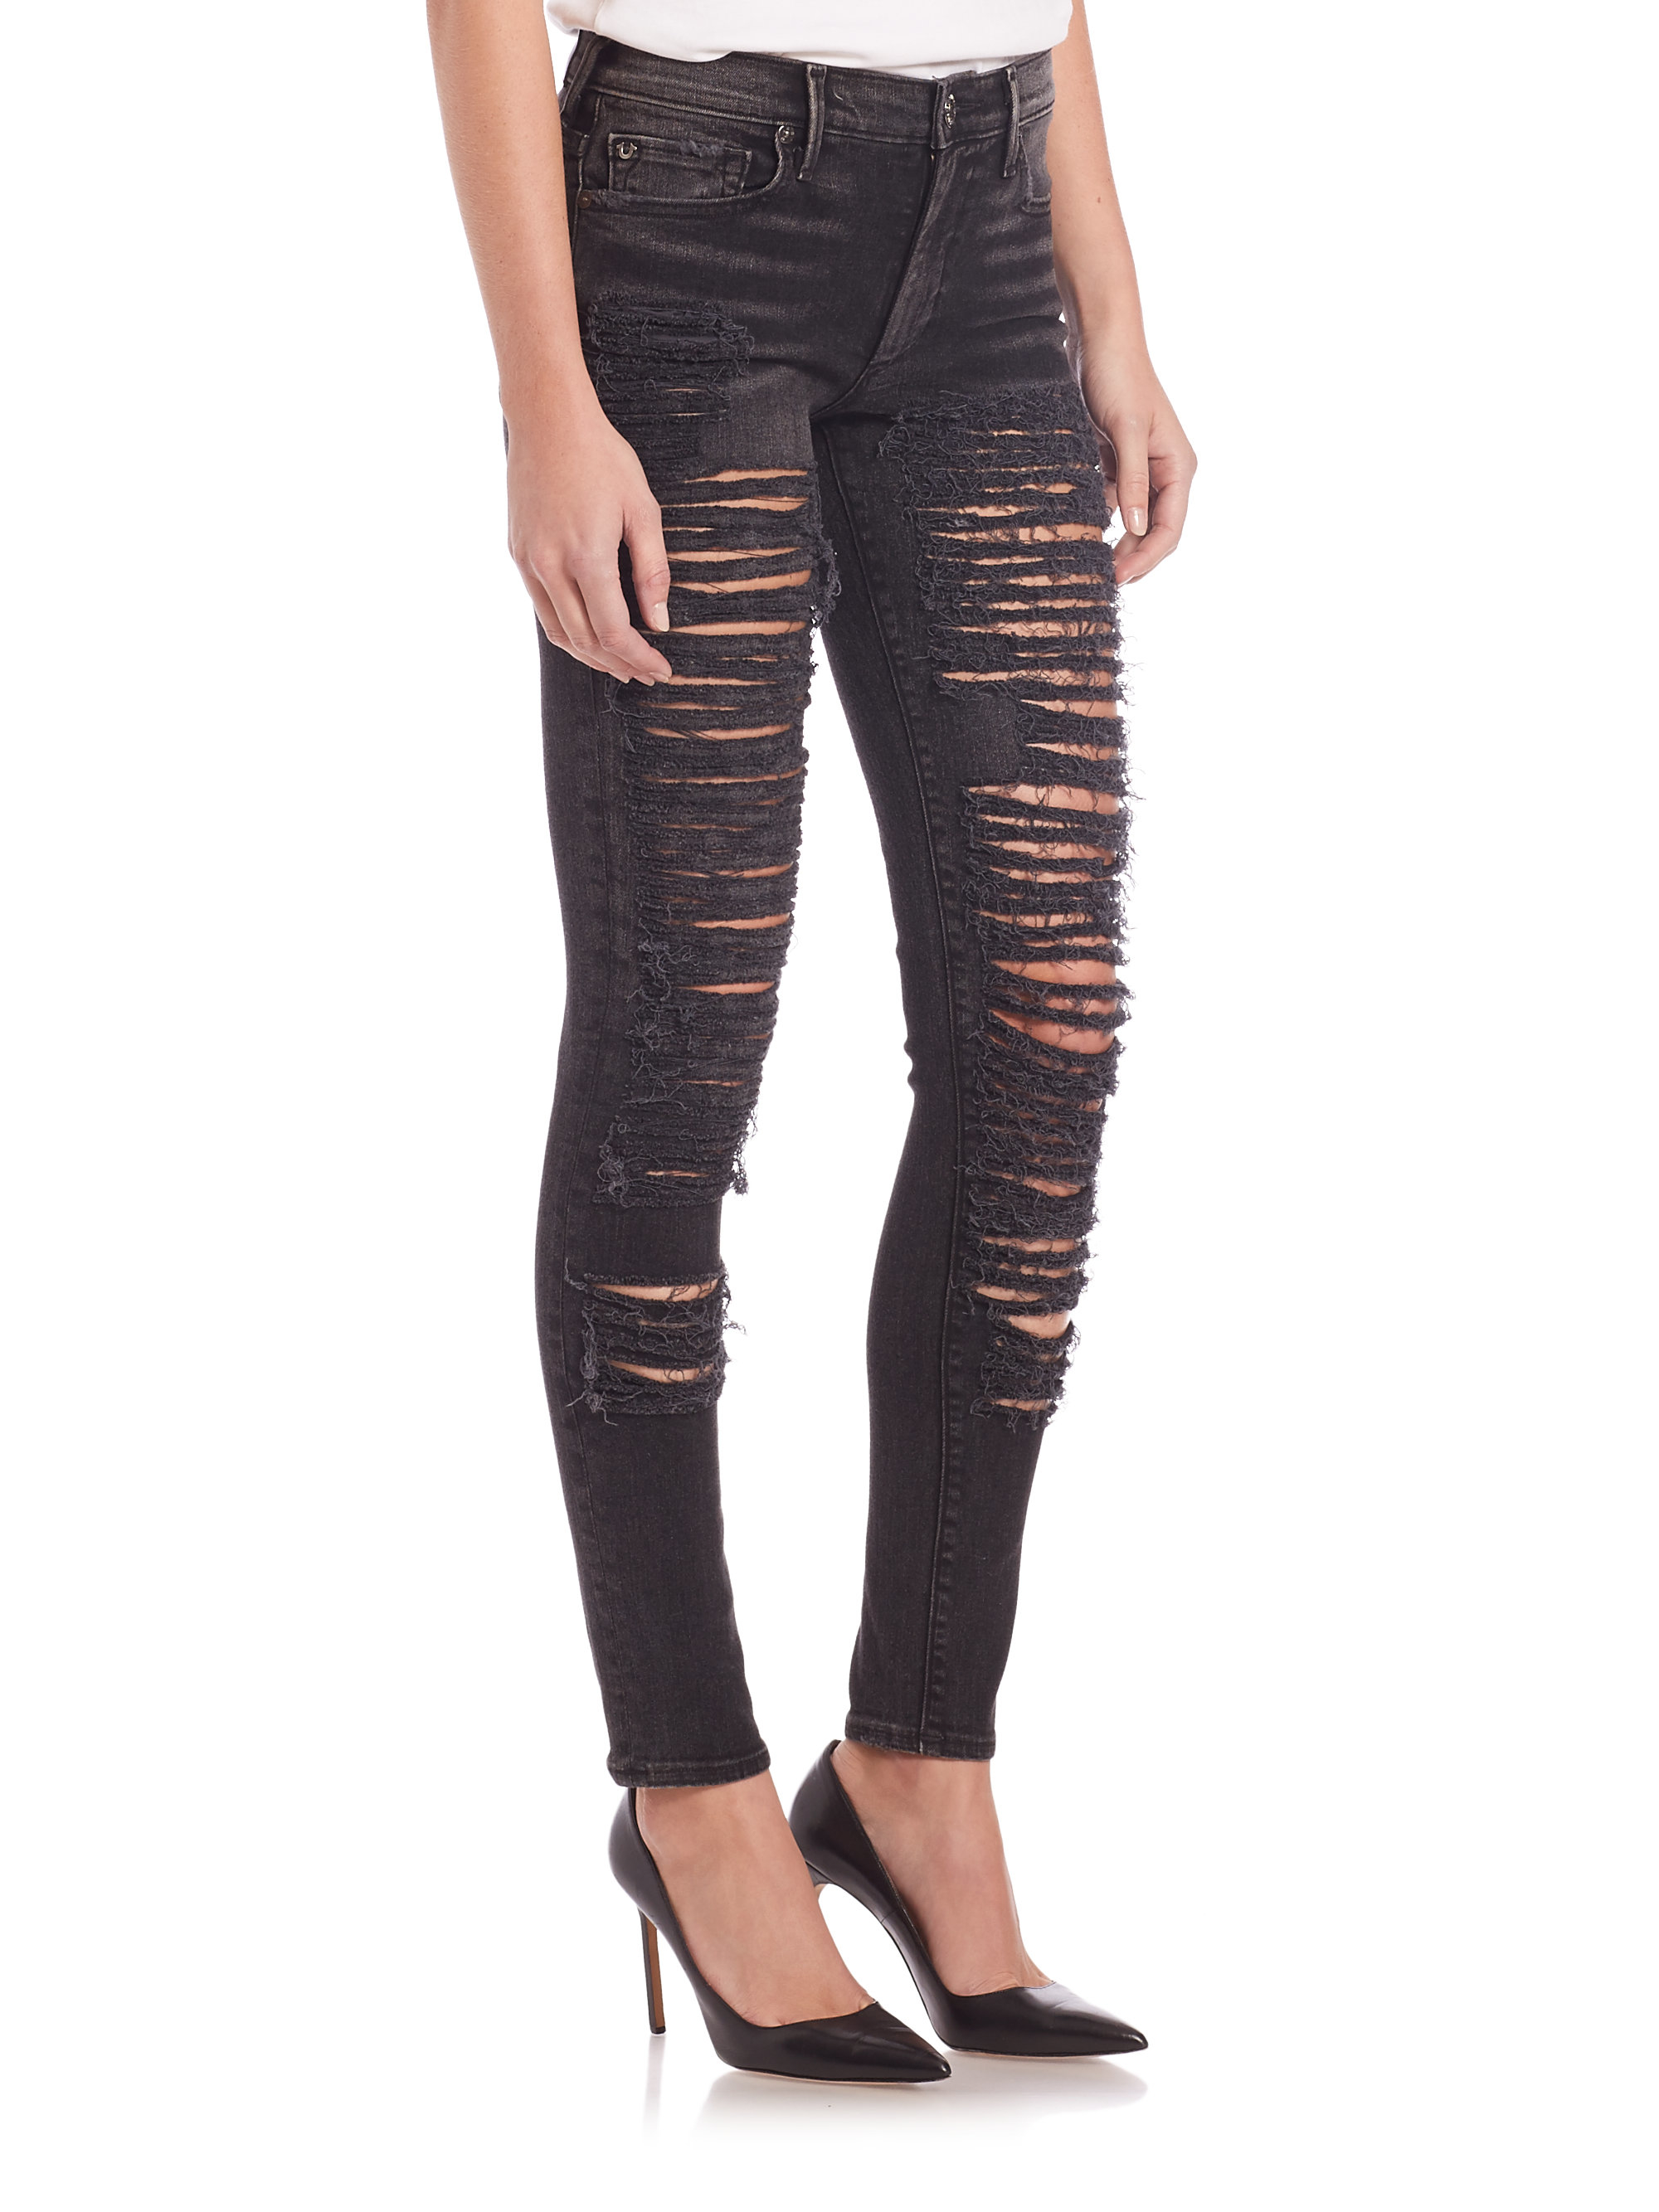 True religion Halle Black Shredded Skinny Jeans in Gray | Lyst